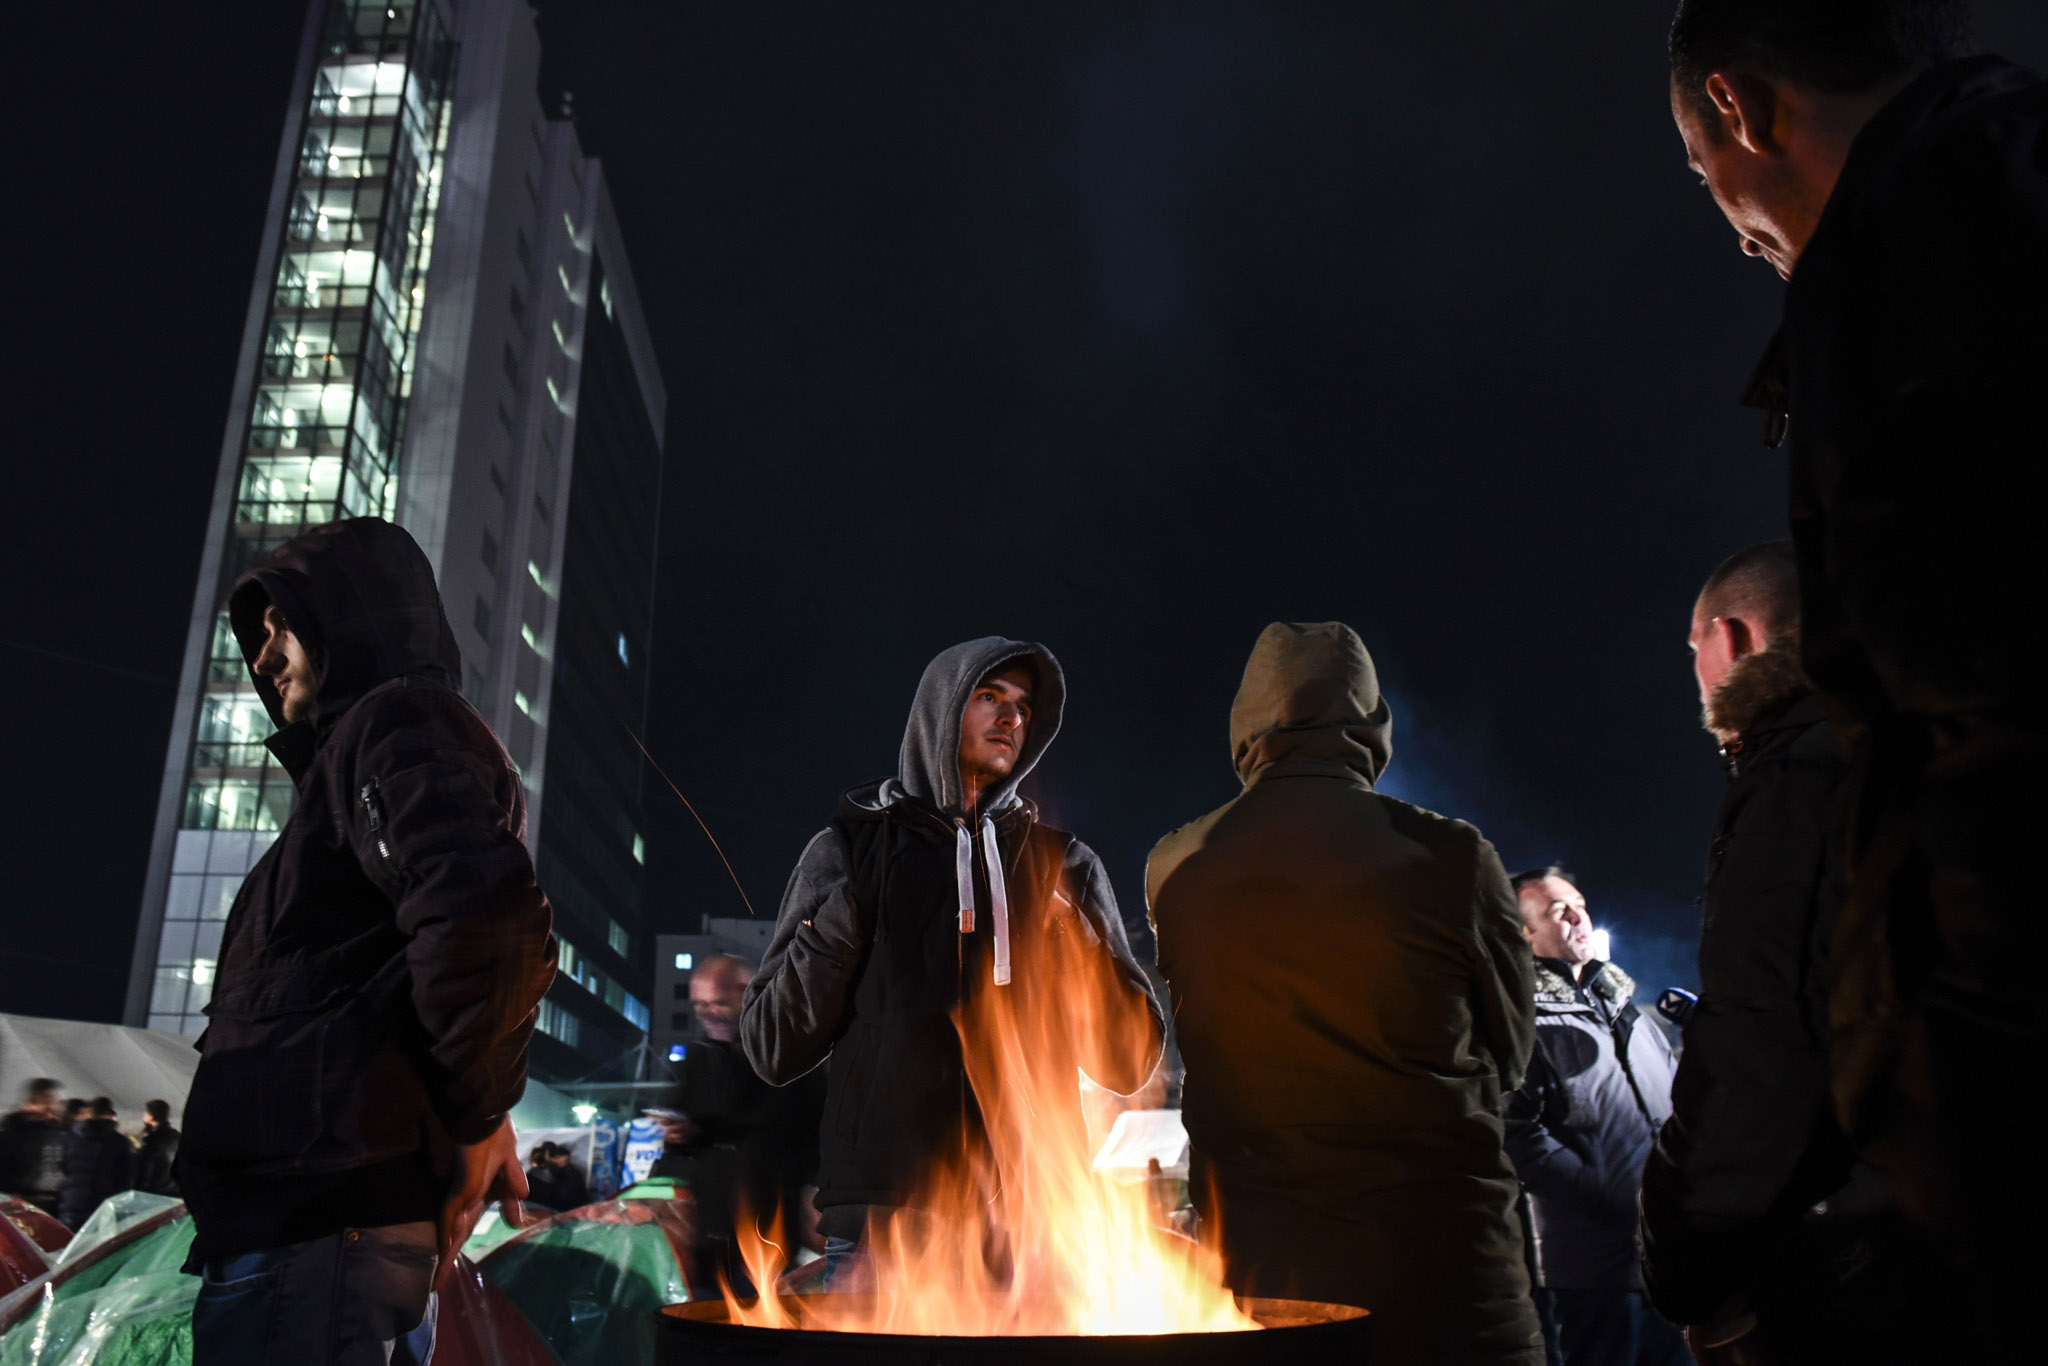 Opposition party supporters keep warm by a fire as they gather in front of Kosovo's government building in Pristina